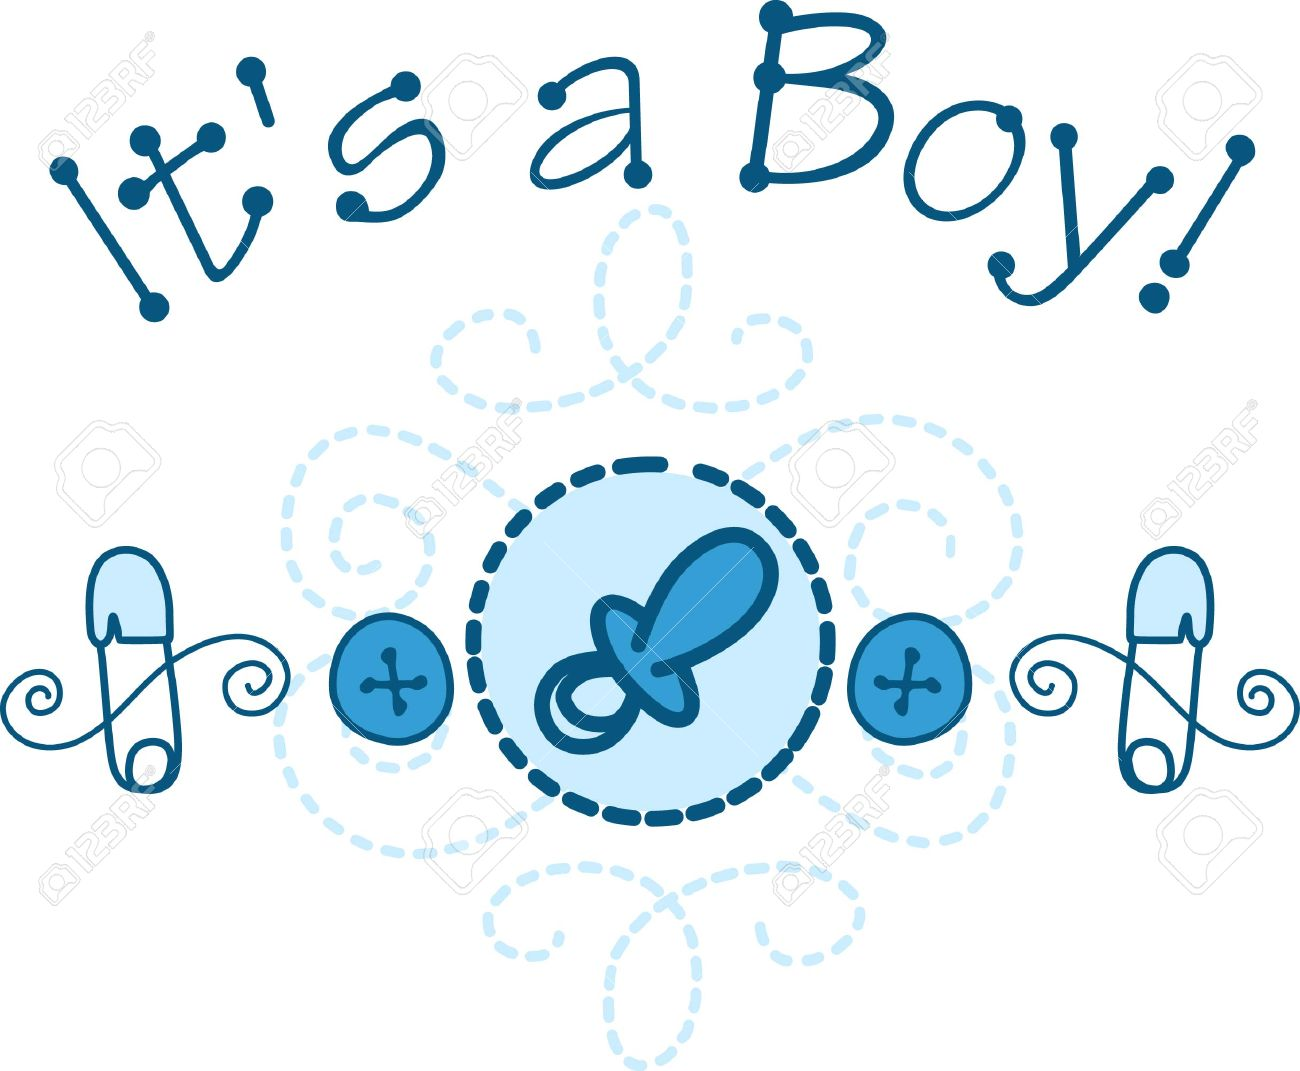 welcome the new baby boy with this cute design of baby necessities